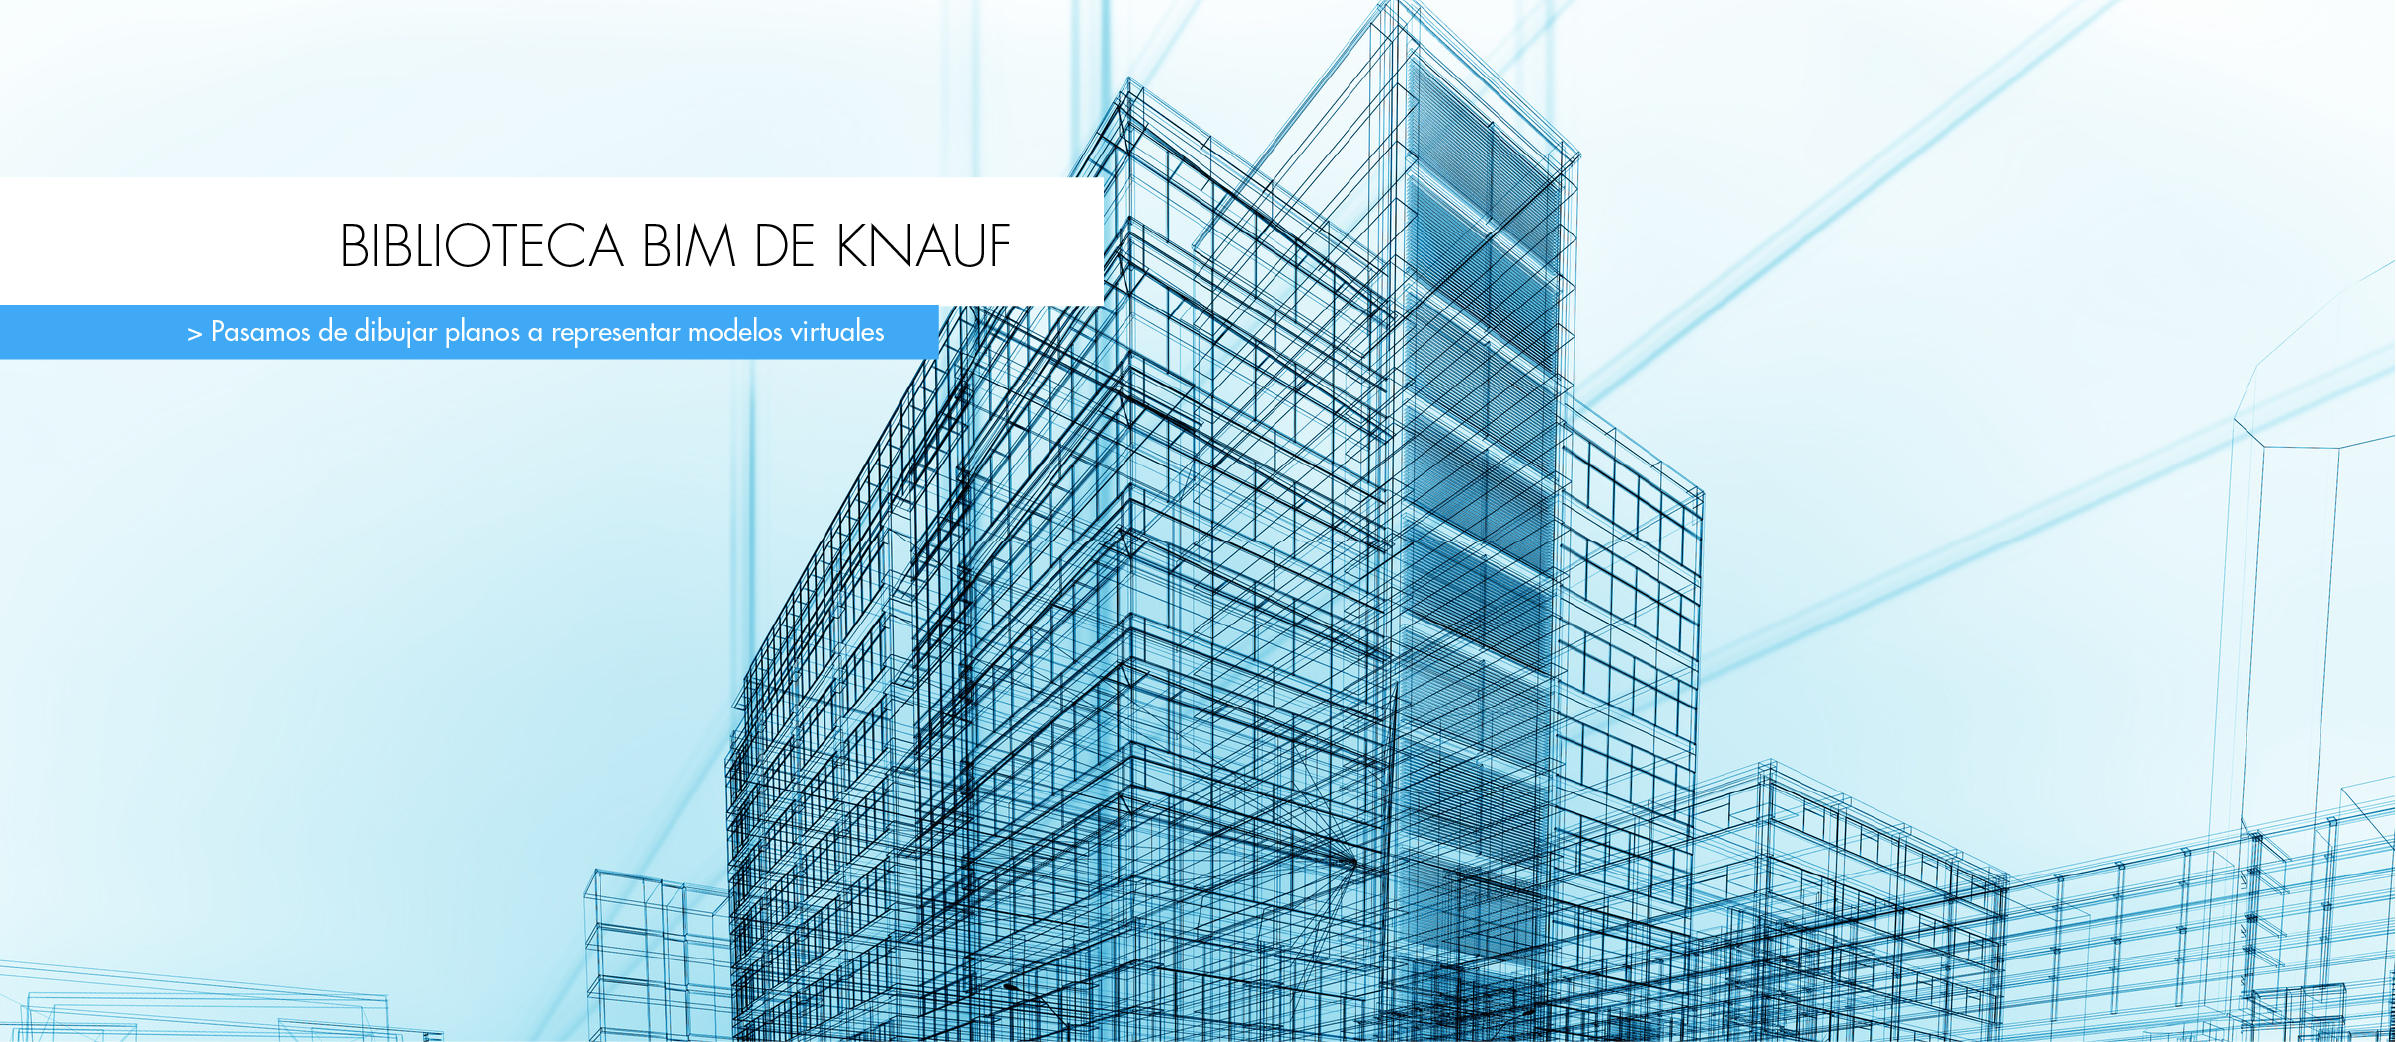 https://www.knauf.es/sites/default/files/revslider/image/Cabecera%20BIM_Mesa%20de%20trabajo%201.png